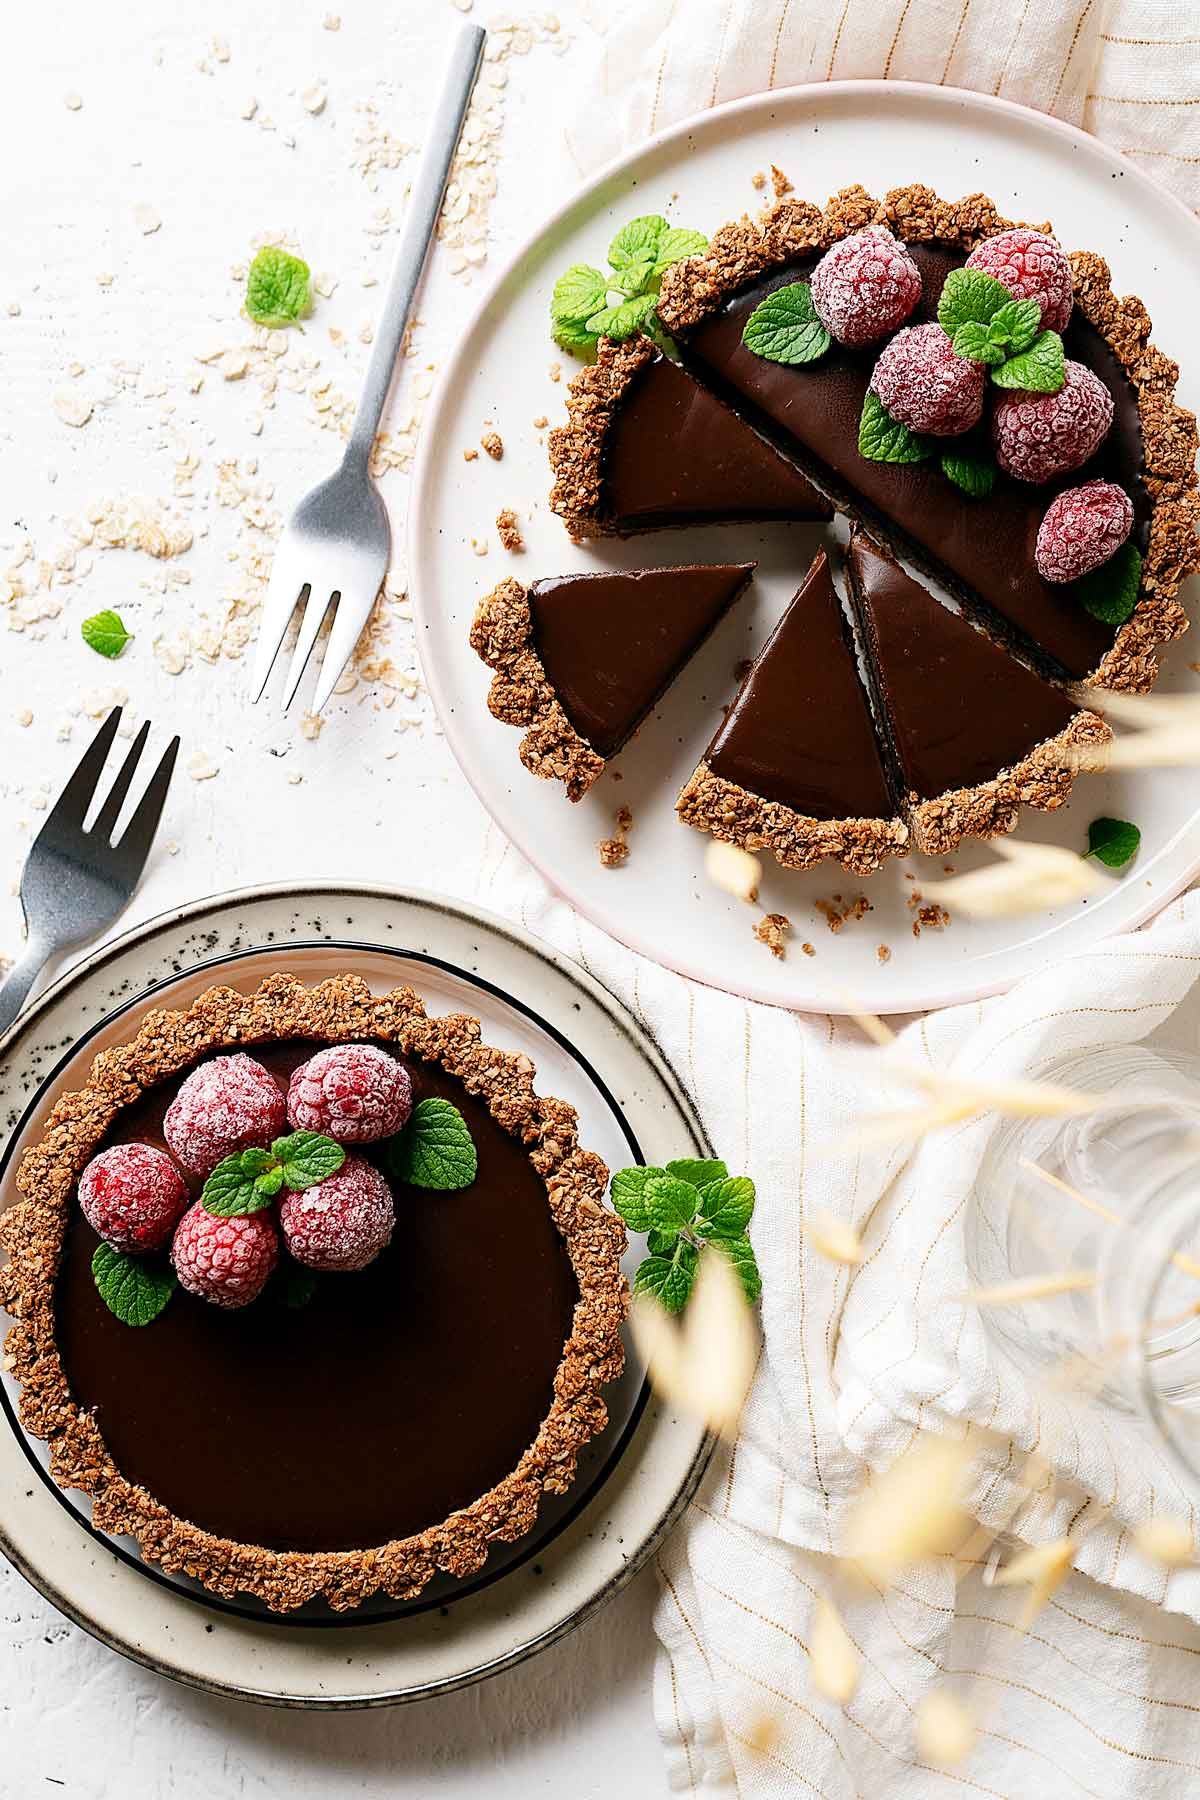 Healthy chocolate coconut tarts sliced view from top with 1 tart whole